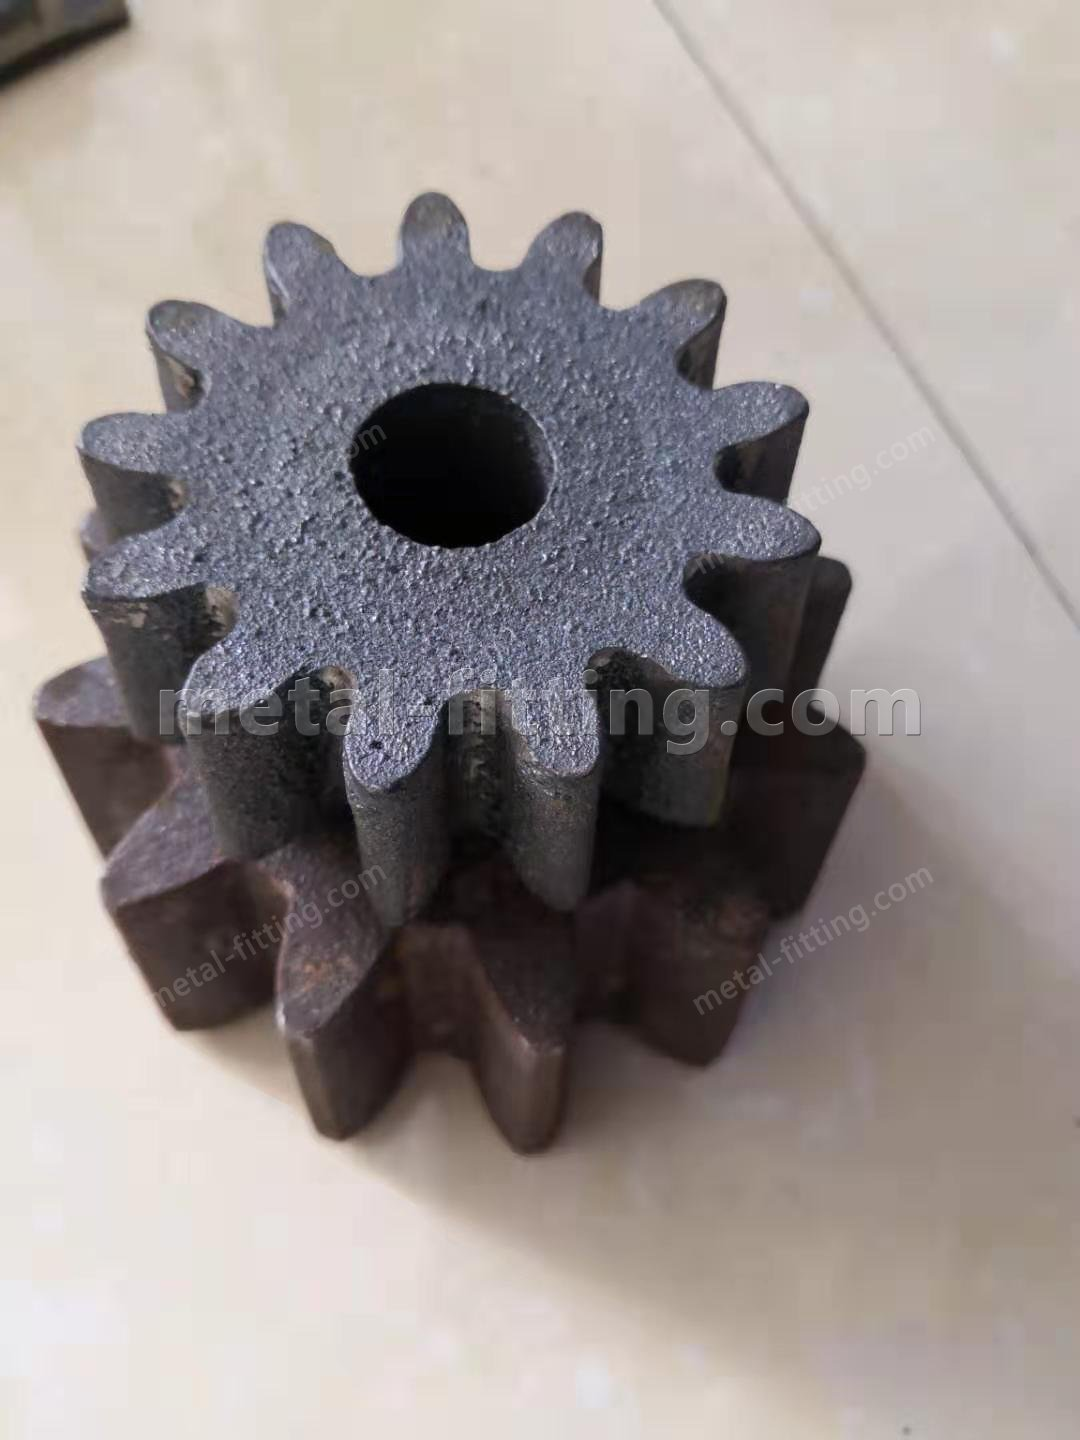 cement mixer cast iron ring gear,metal concrete mixer gear and pinion set ,spinning gear ring-cast mixer ring gear (3)